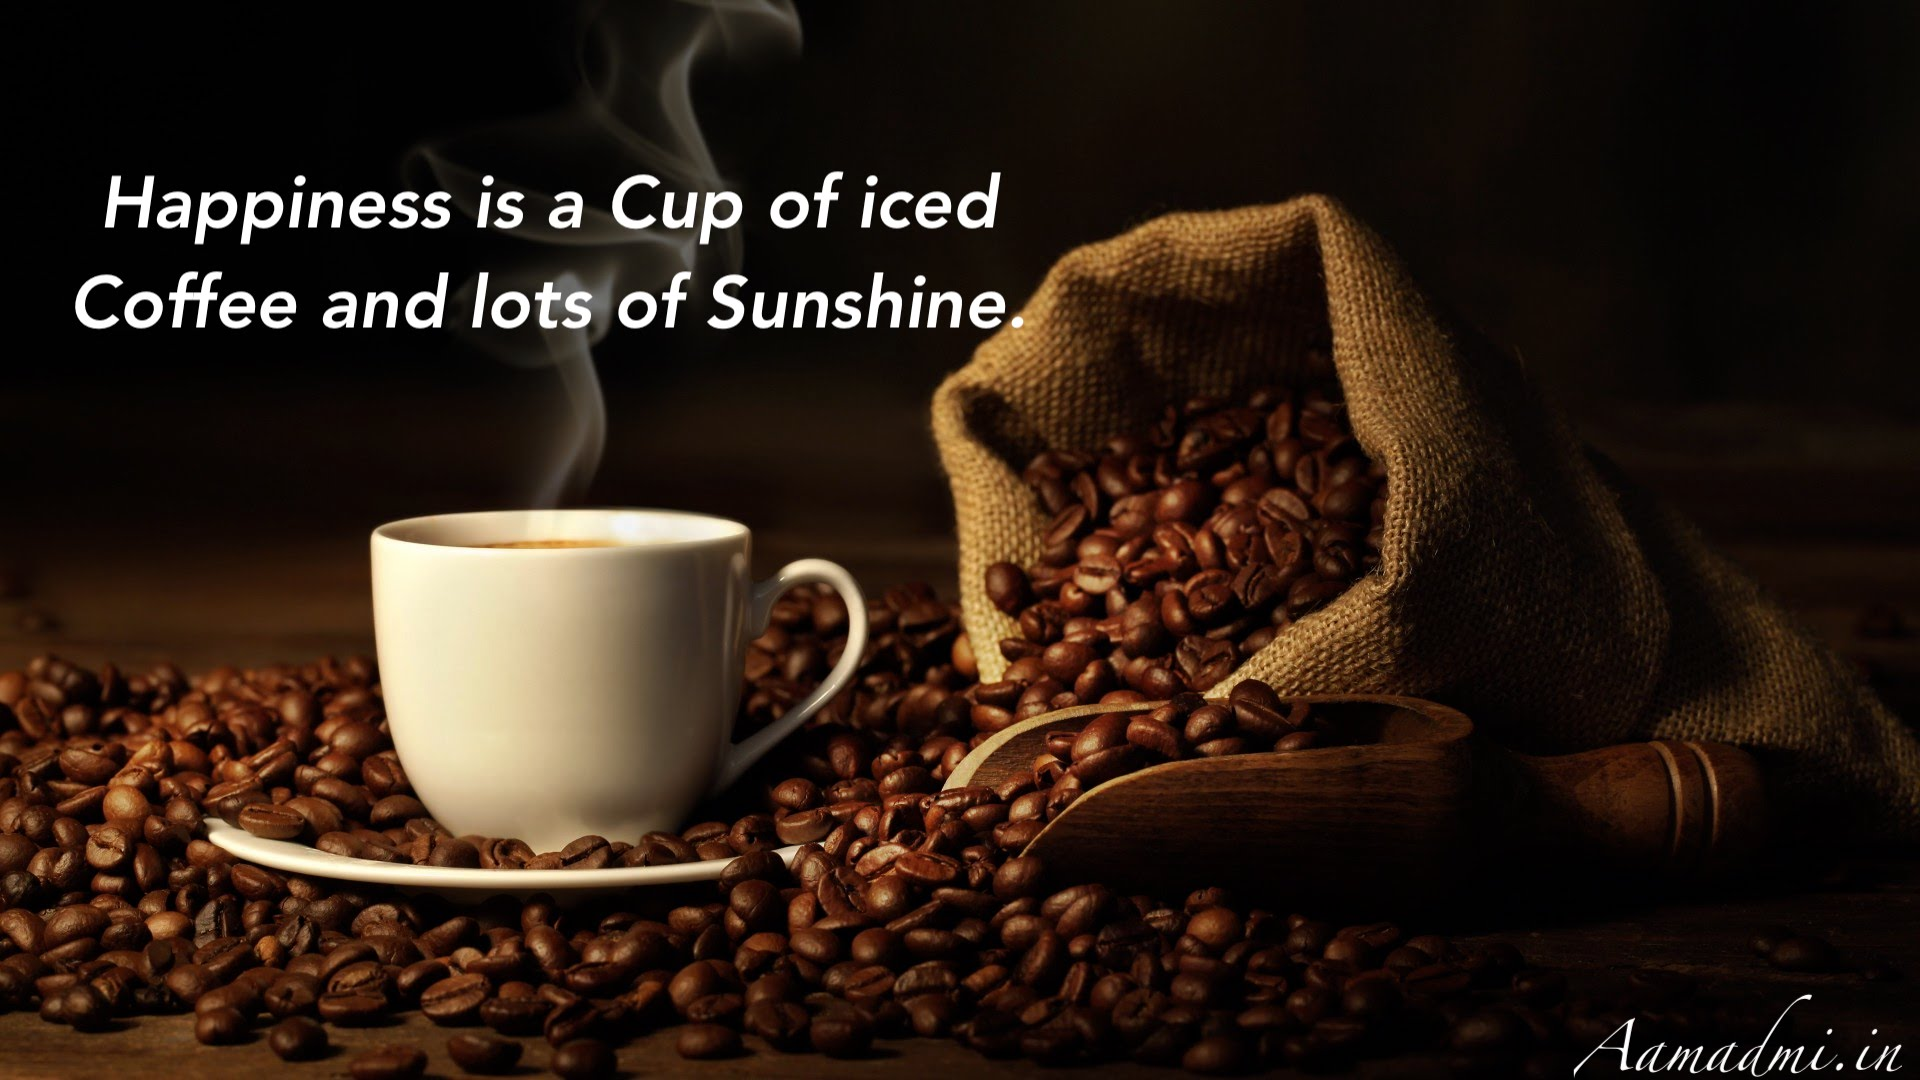 Hot Cold Coffee Status Quotes Shayari In Hindi English For Whatsapp Facebook